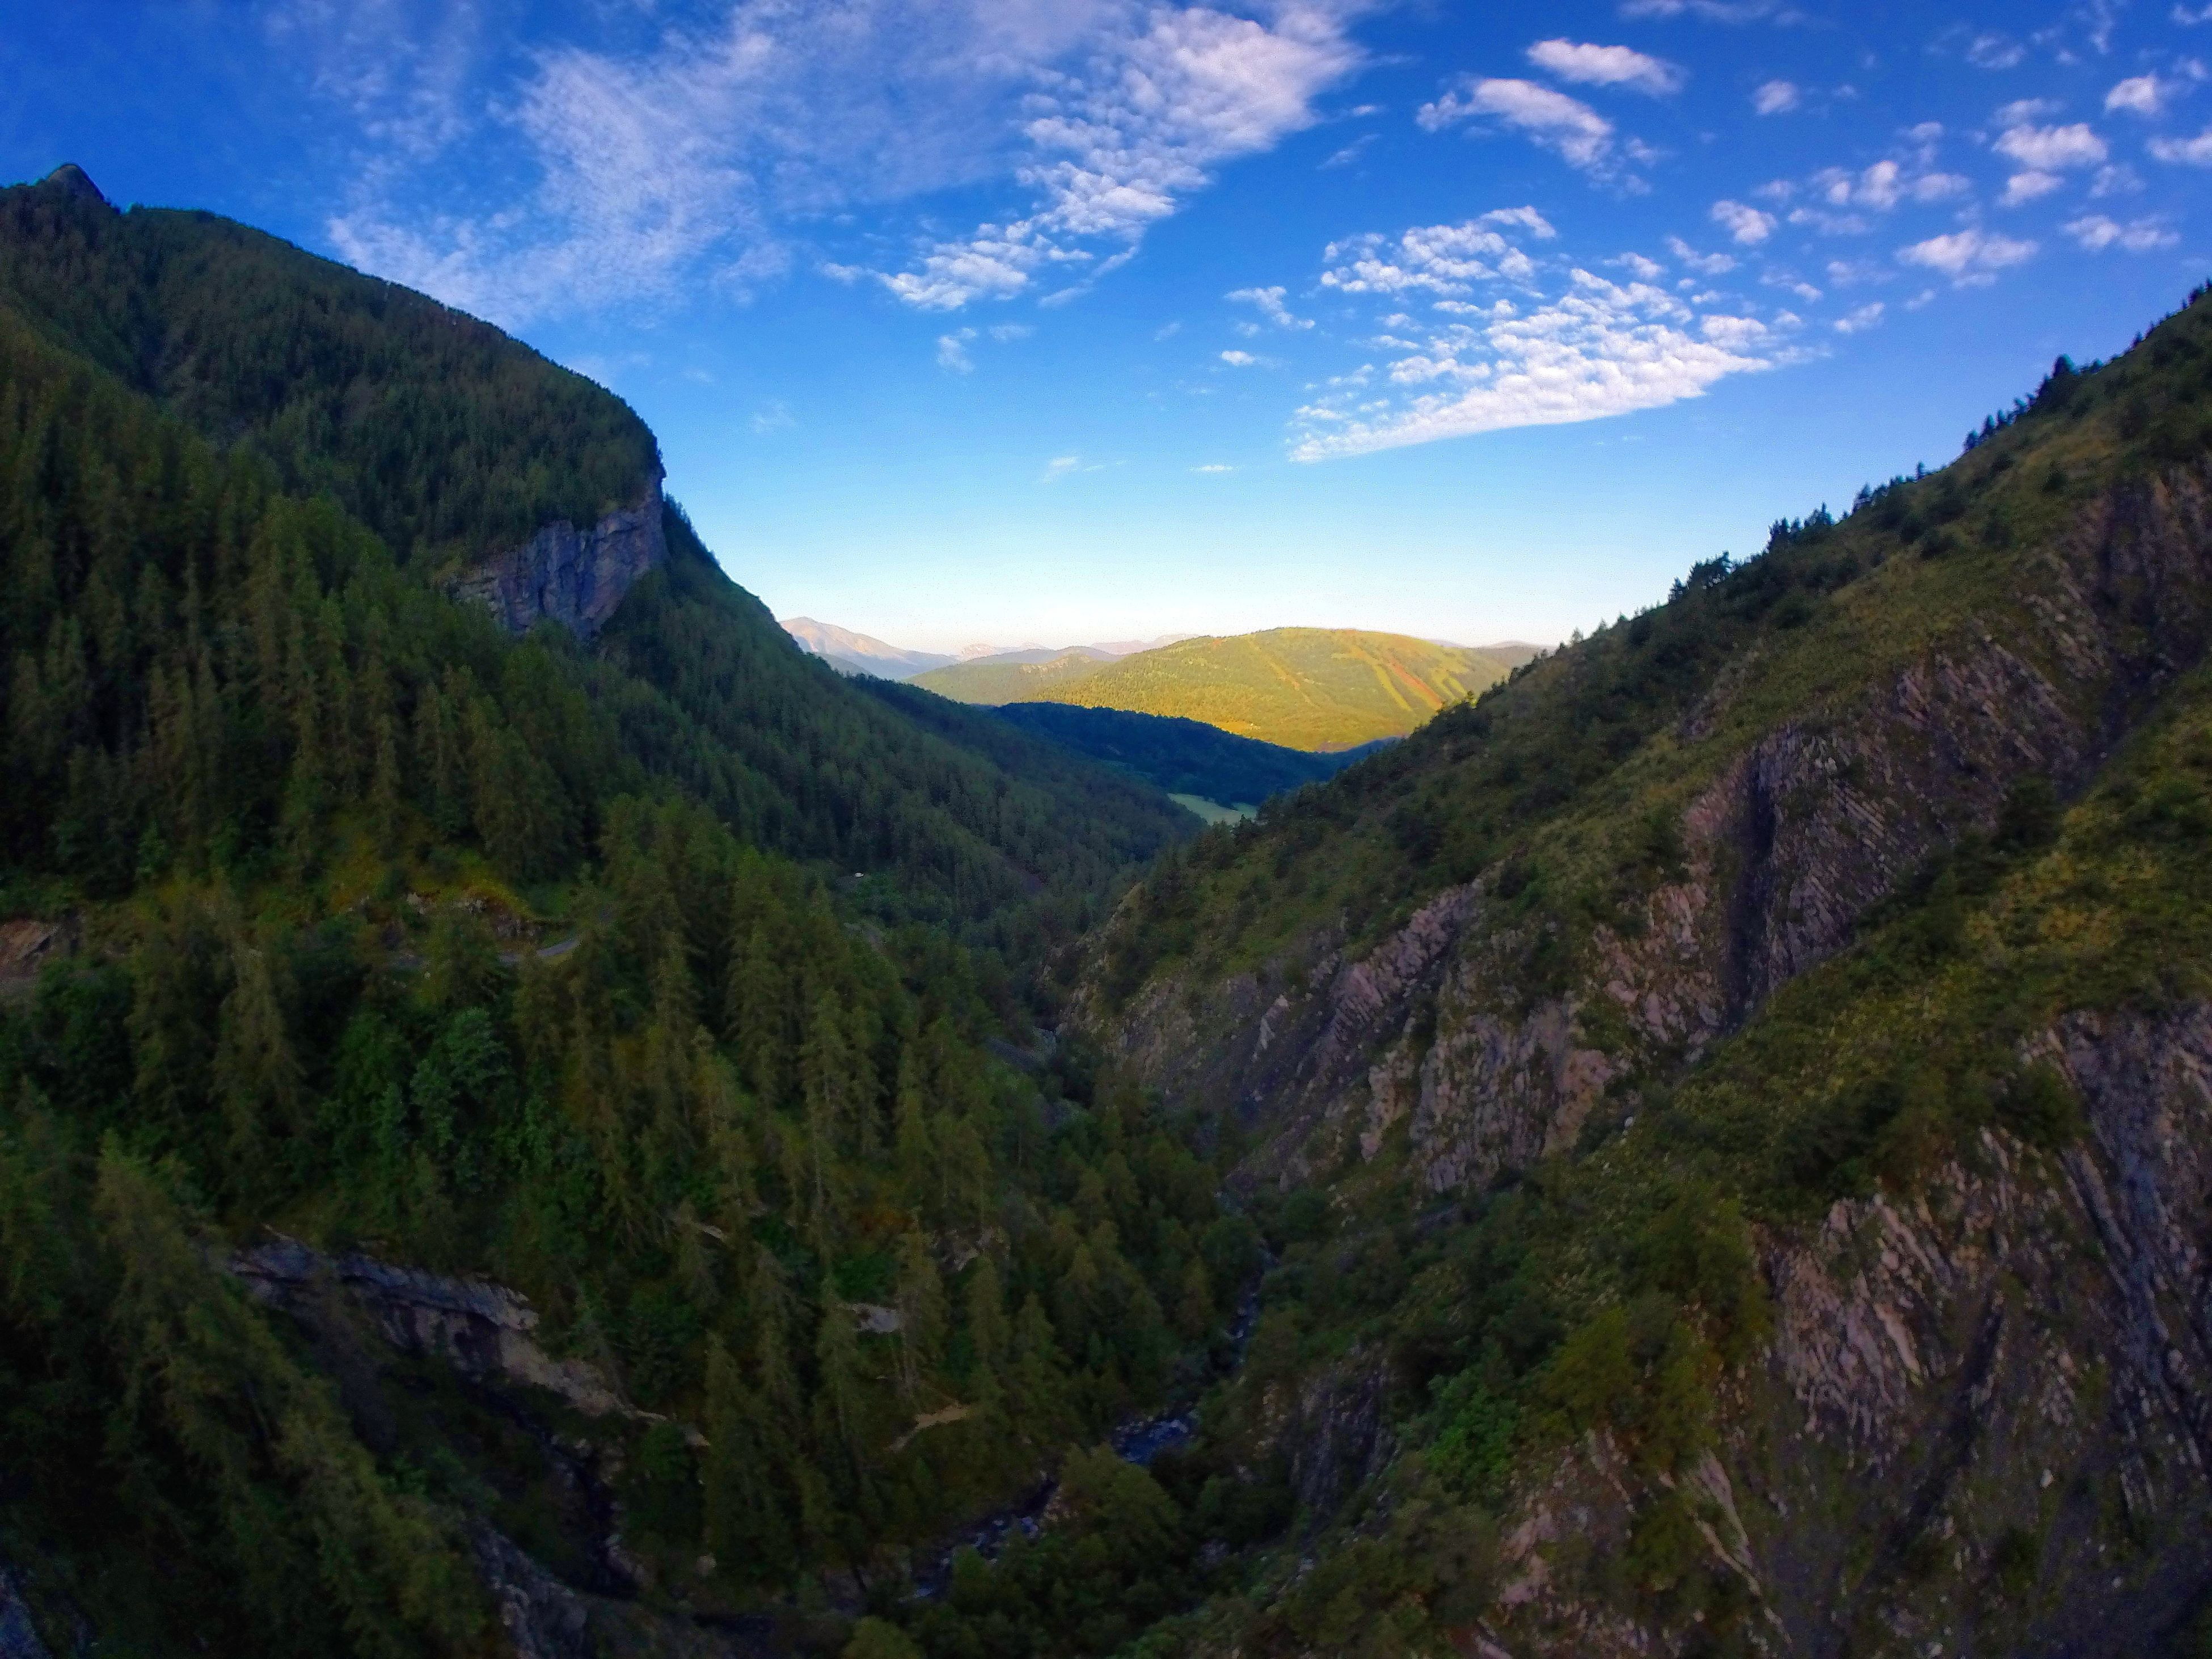 La cabane du mulet Drone  Dronephotography Drone Dji Phantom Dronegopro Gopro The Nature Of Beauty GoPro Hero3+ Cheese! Goprolifestyle_ Intheair Gopprophotography